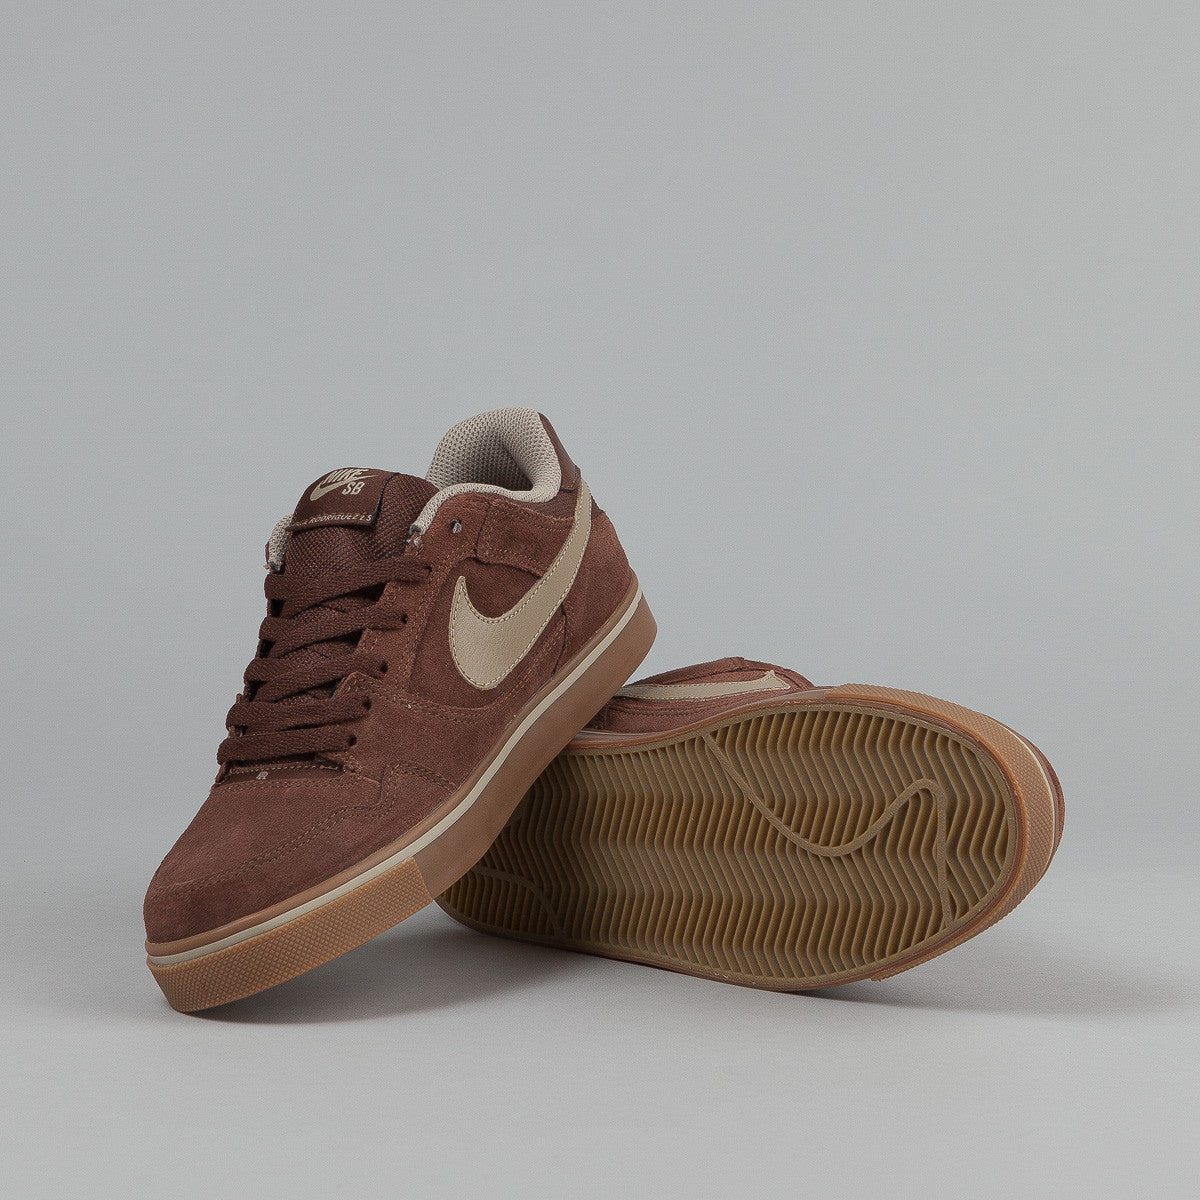 Nike SB Paul Rodriguez 2.5 Shoes - Light Chocolate / Khaki